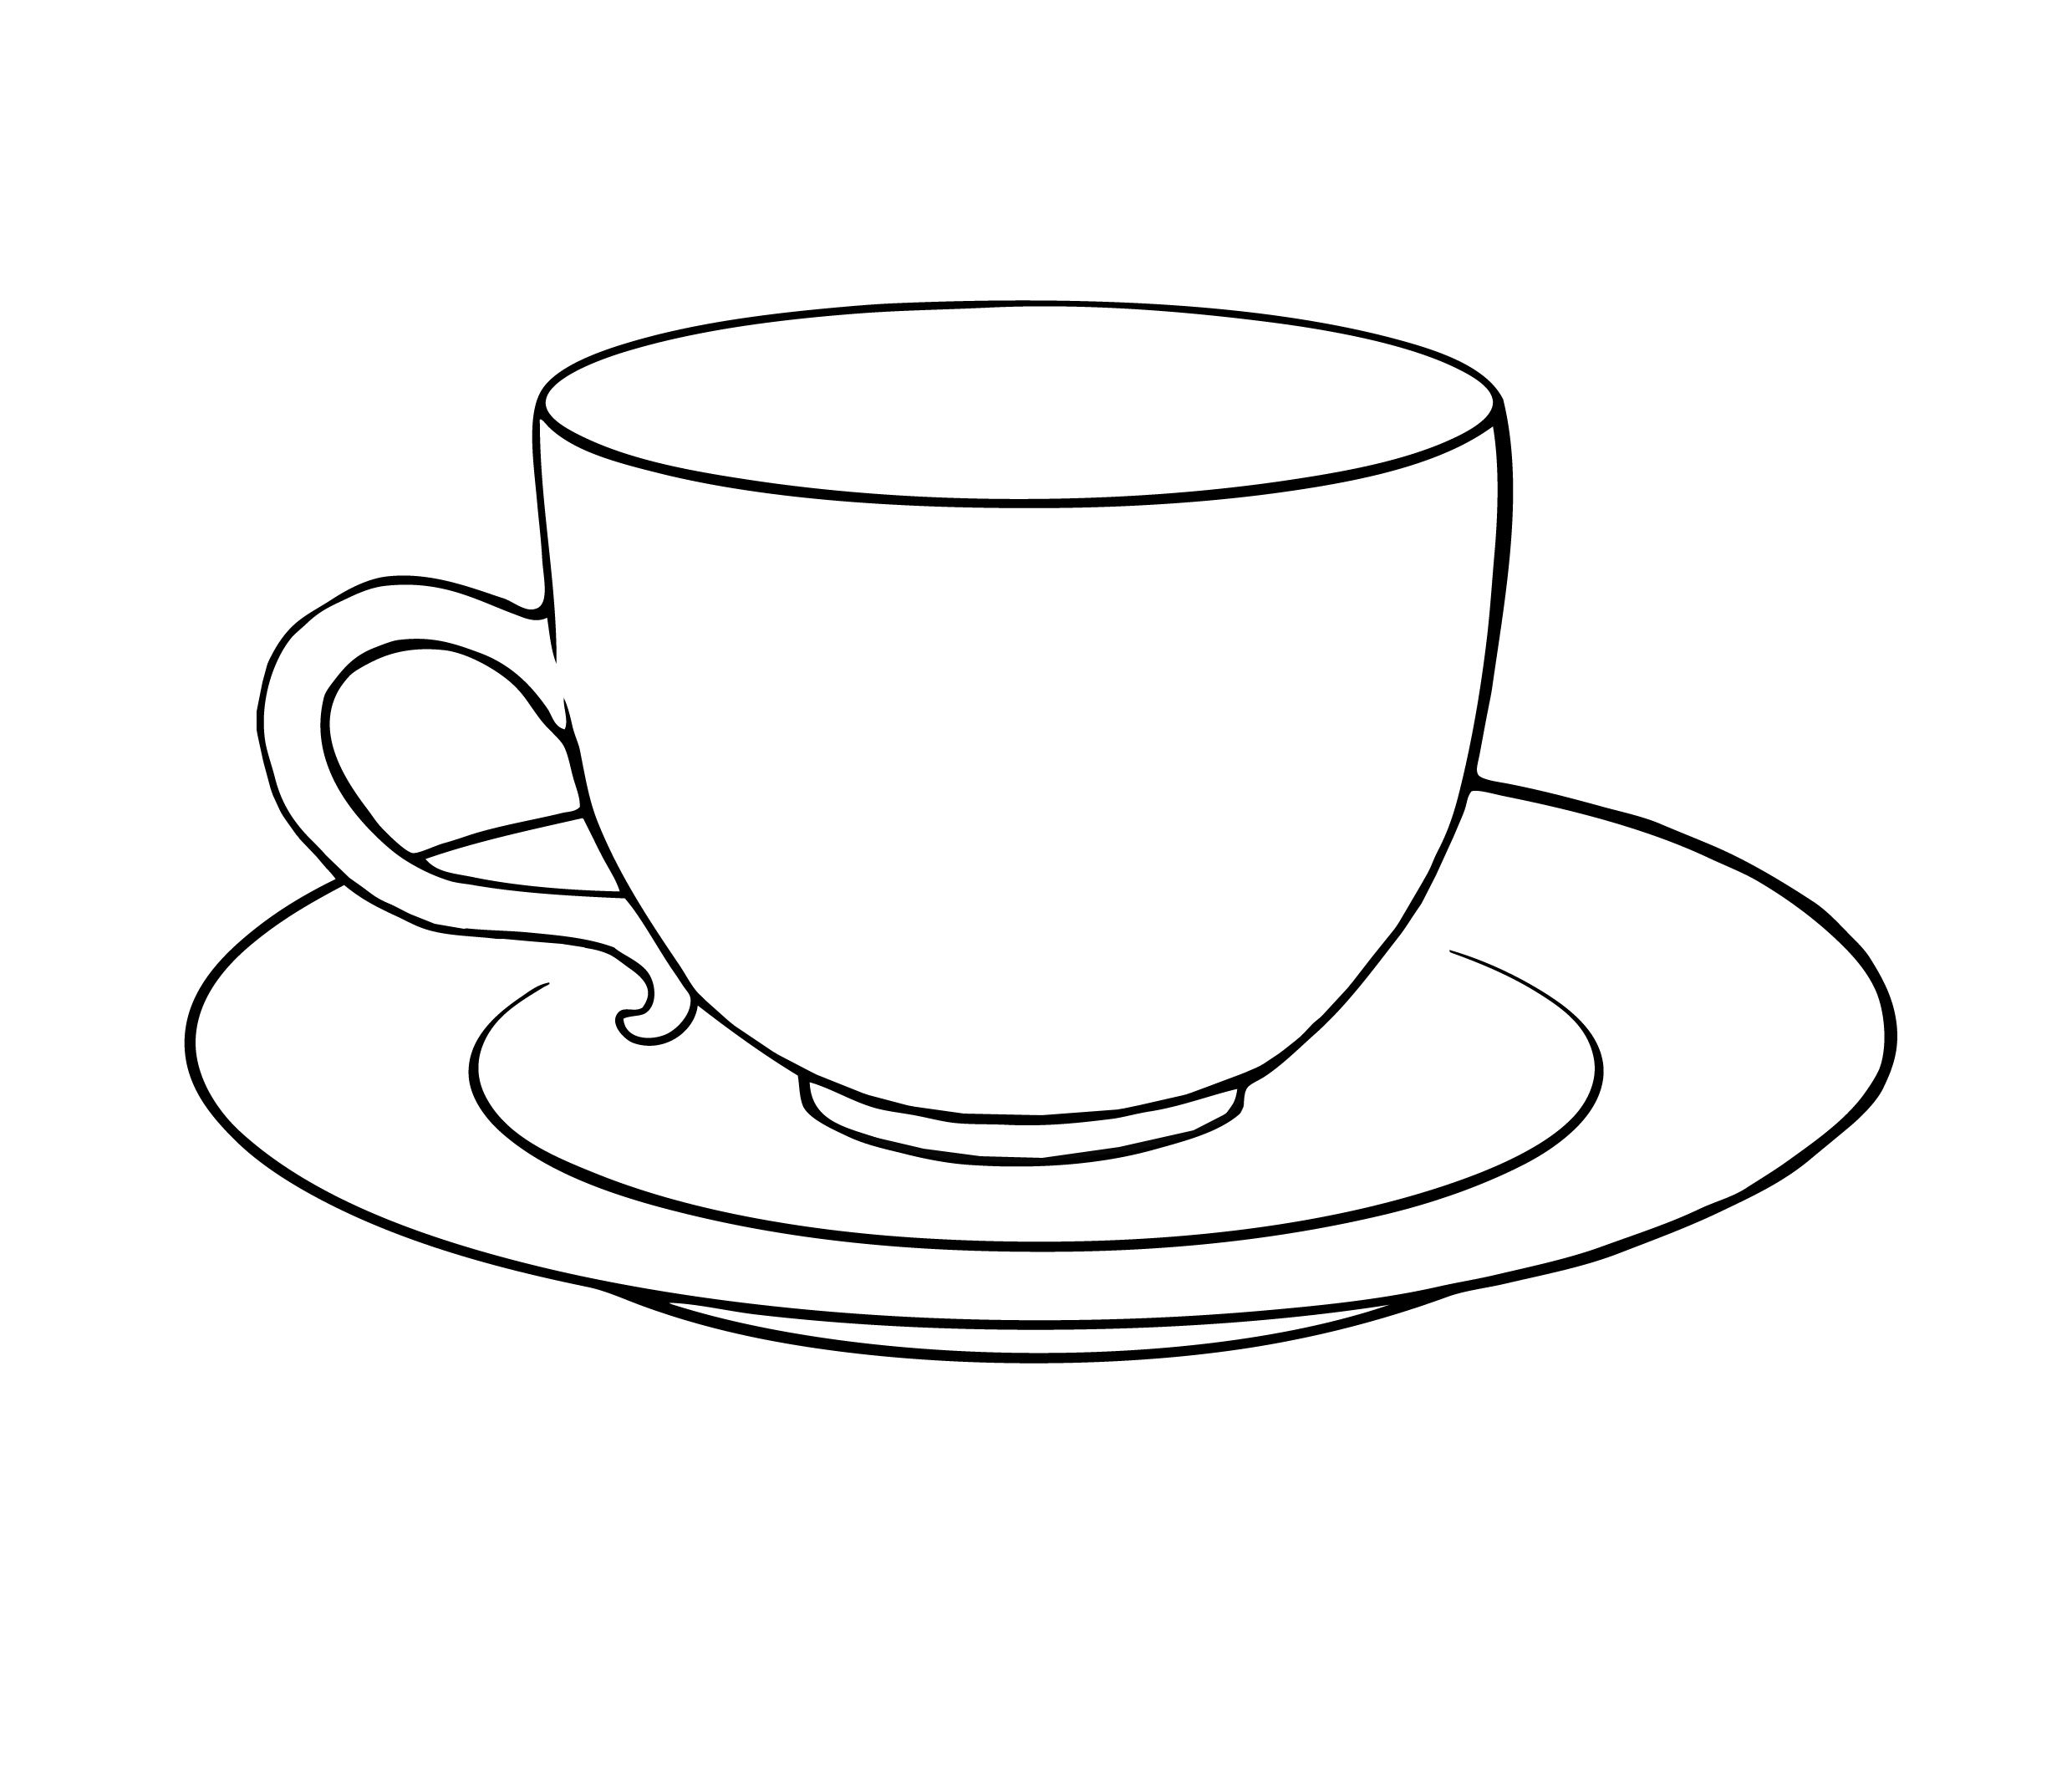 Tea Cup And Saucer Drawing Sketch Coloring Page | Crafty Stuff - Free Printable Tea Cup Coloring Pages